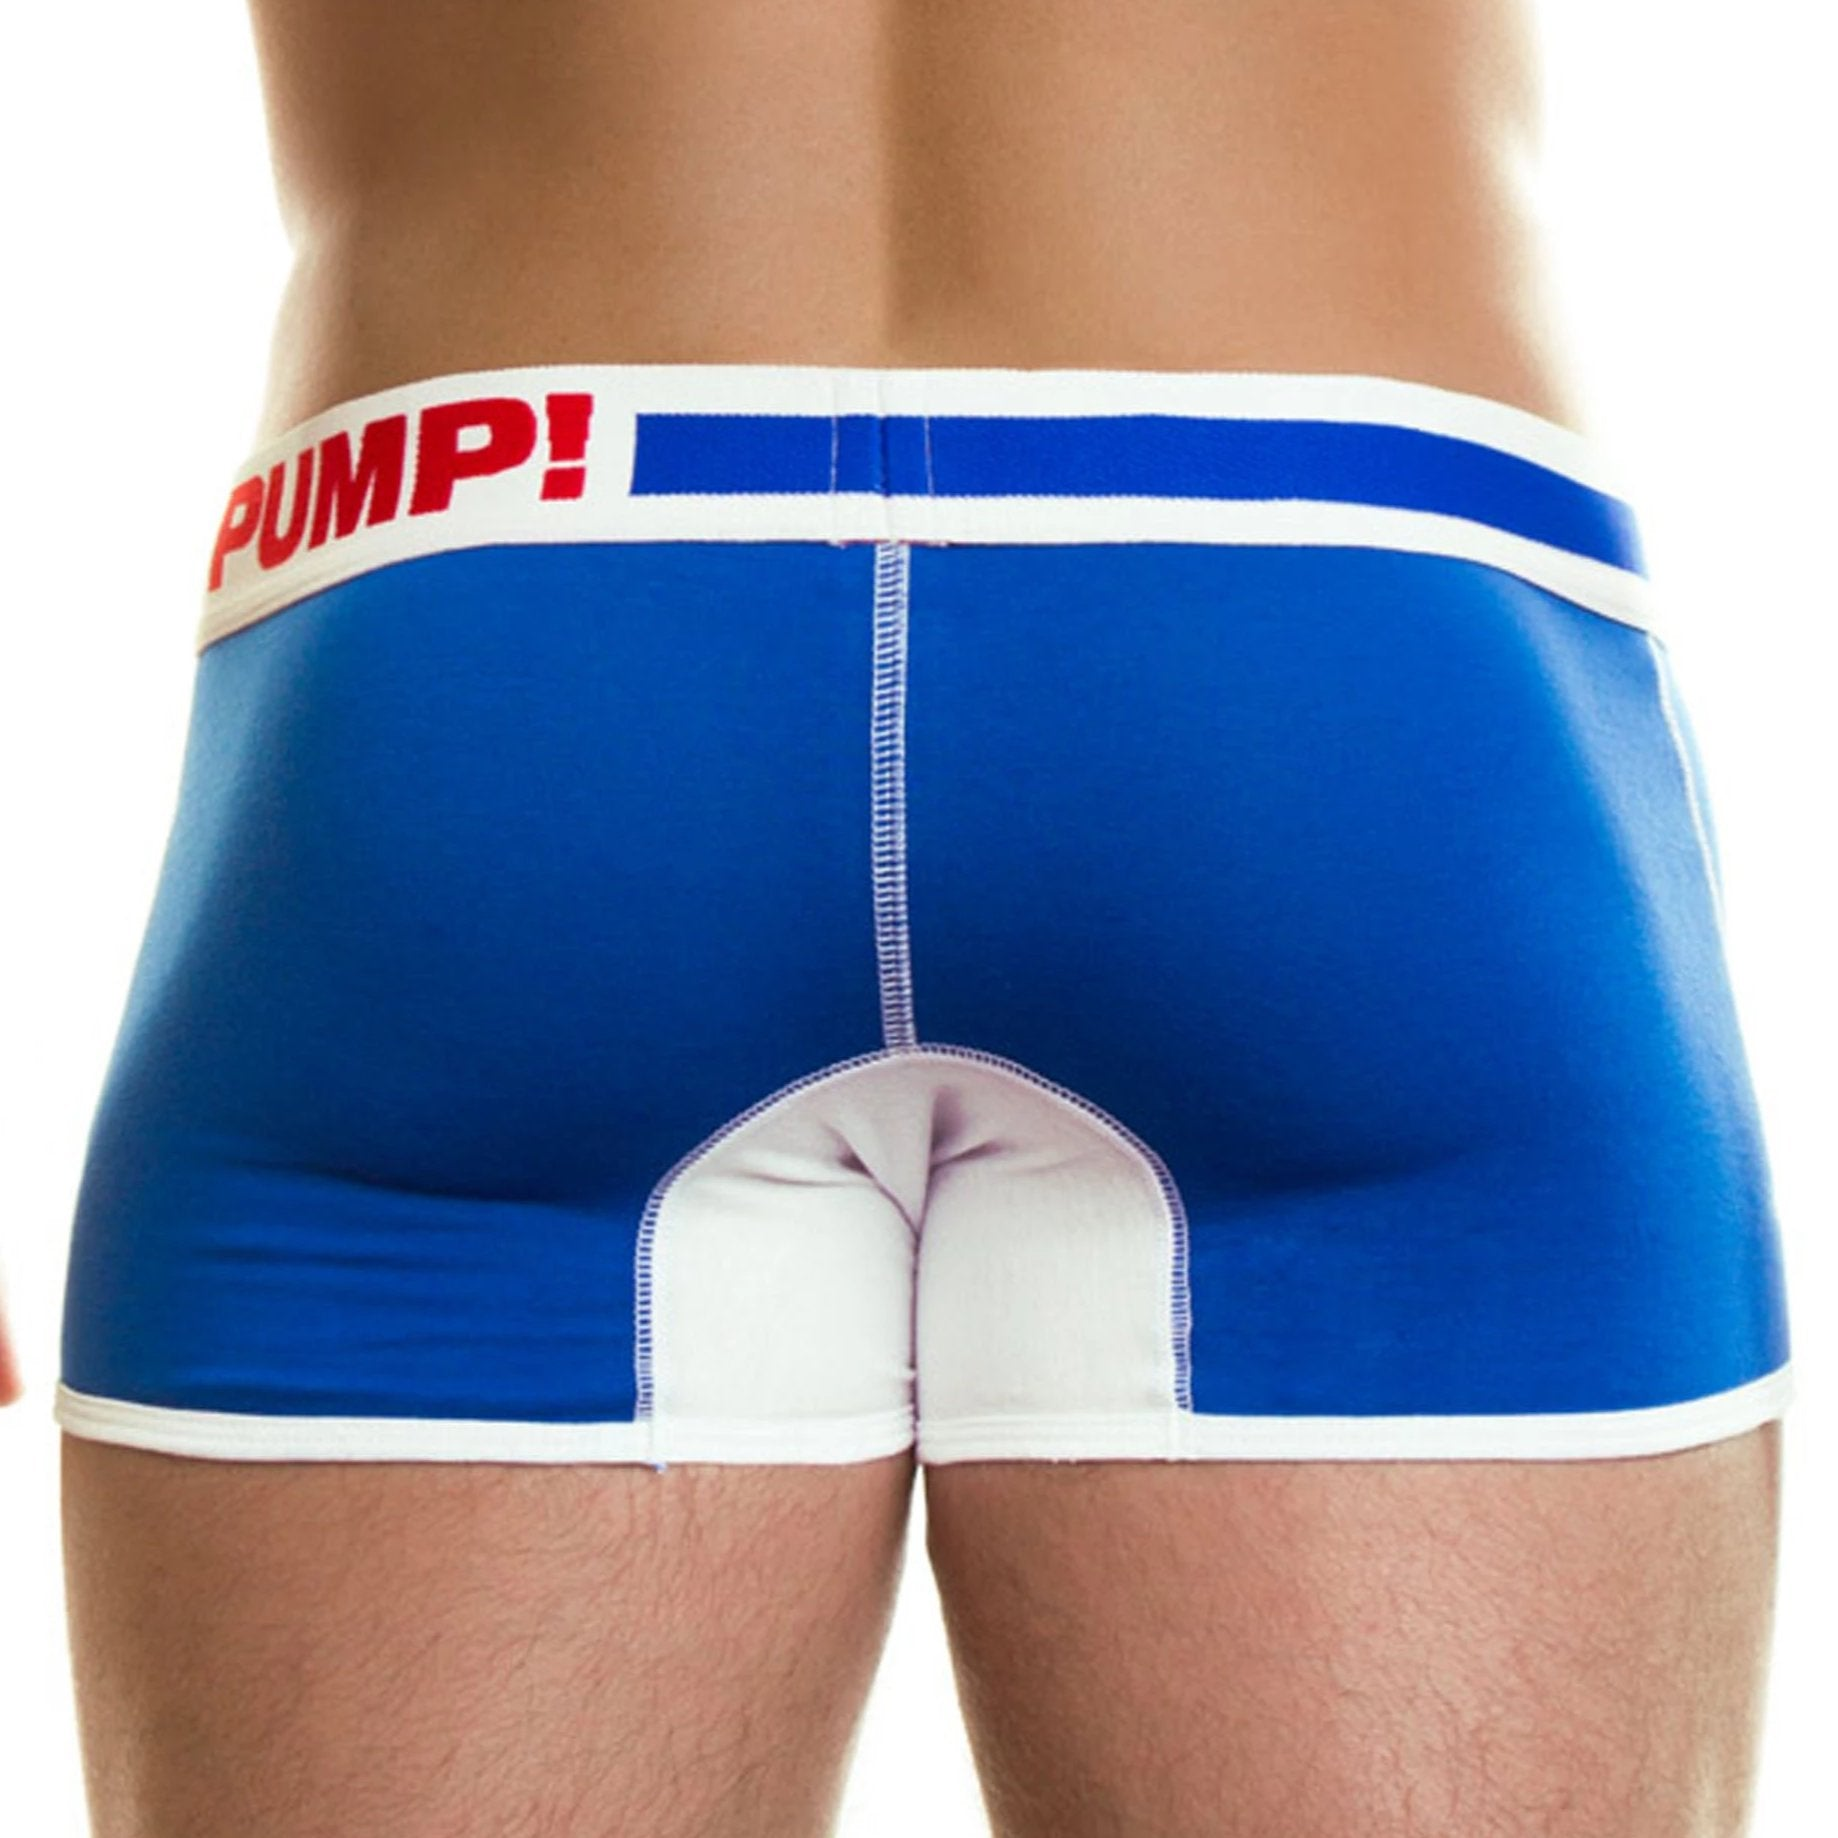 Hero Jogger Side by PUMP! Underwear at Trenderwear.com